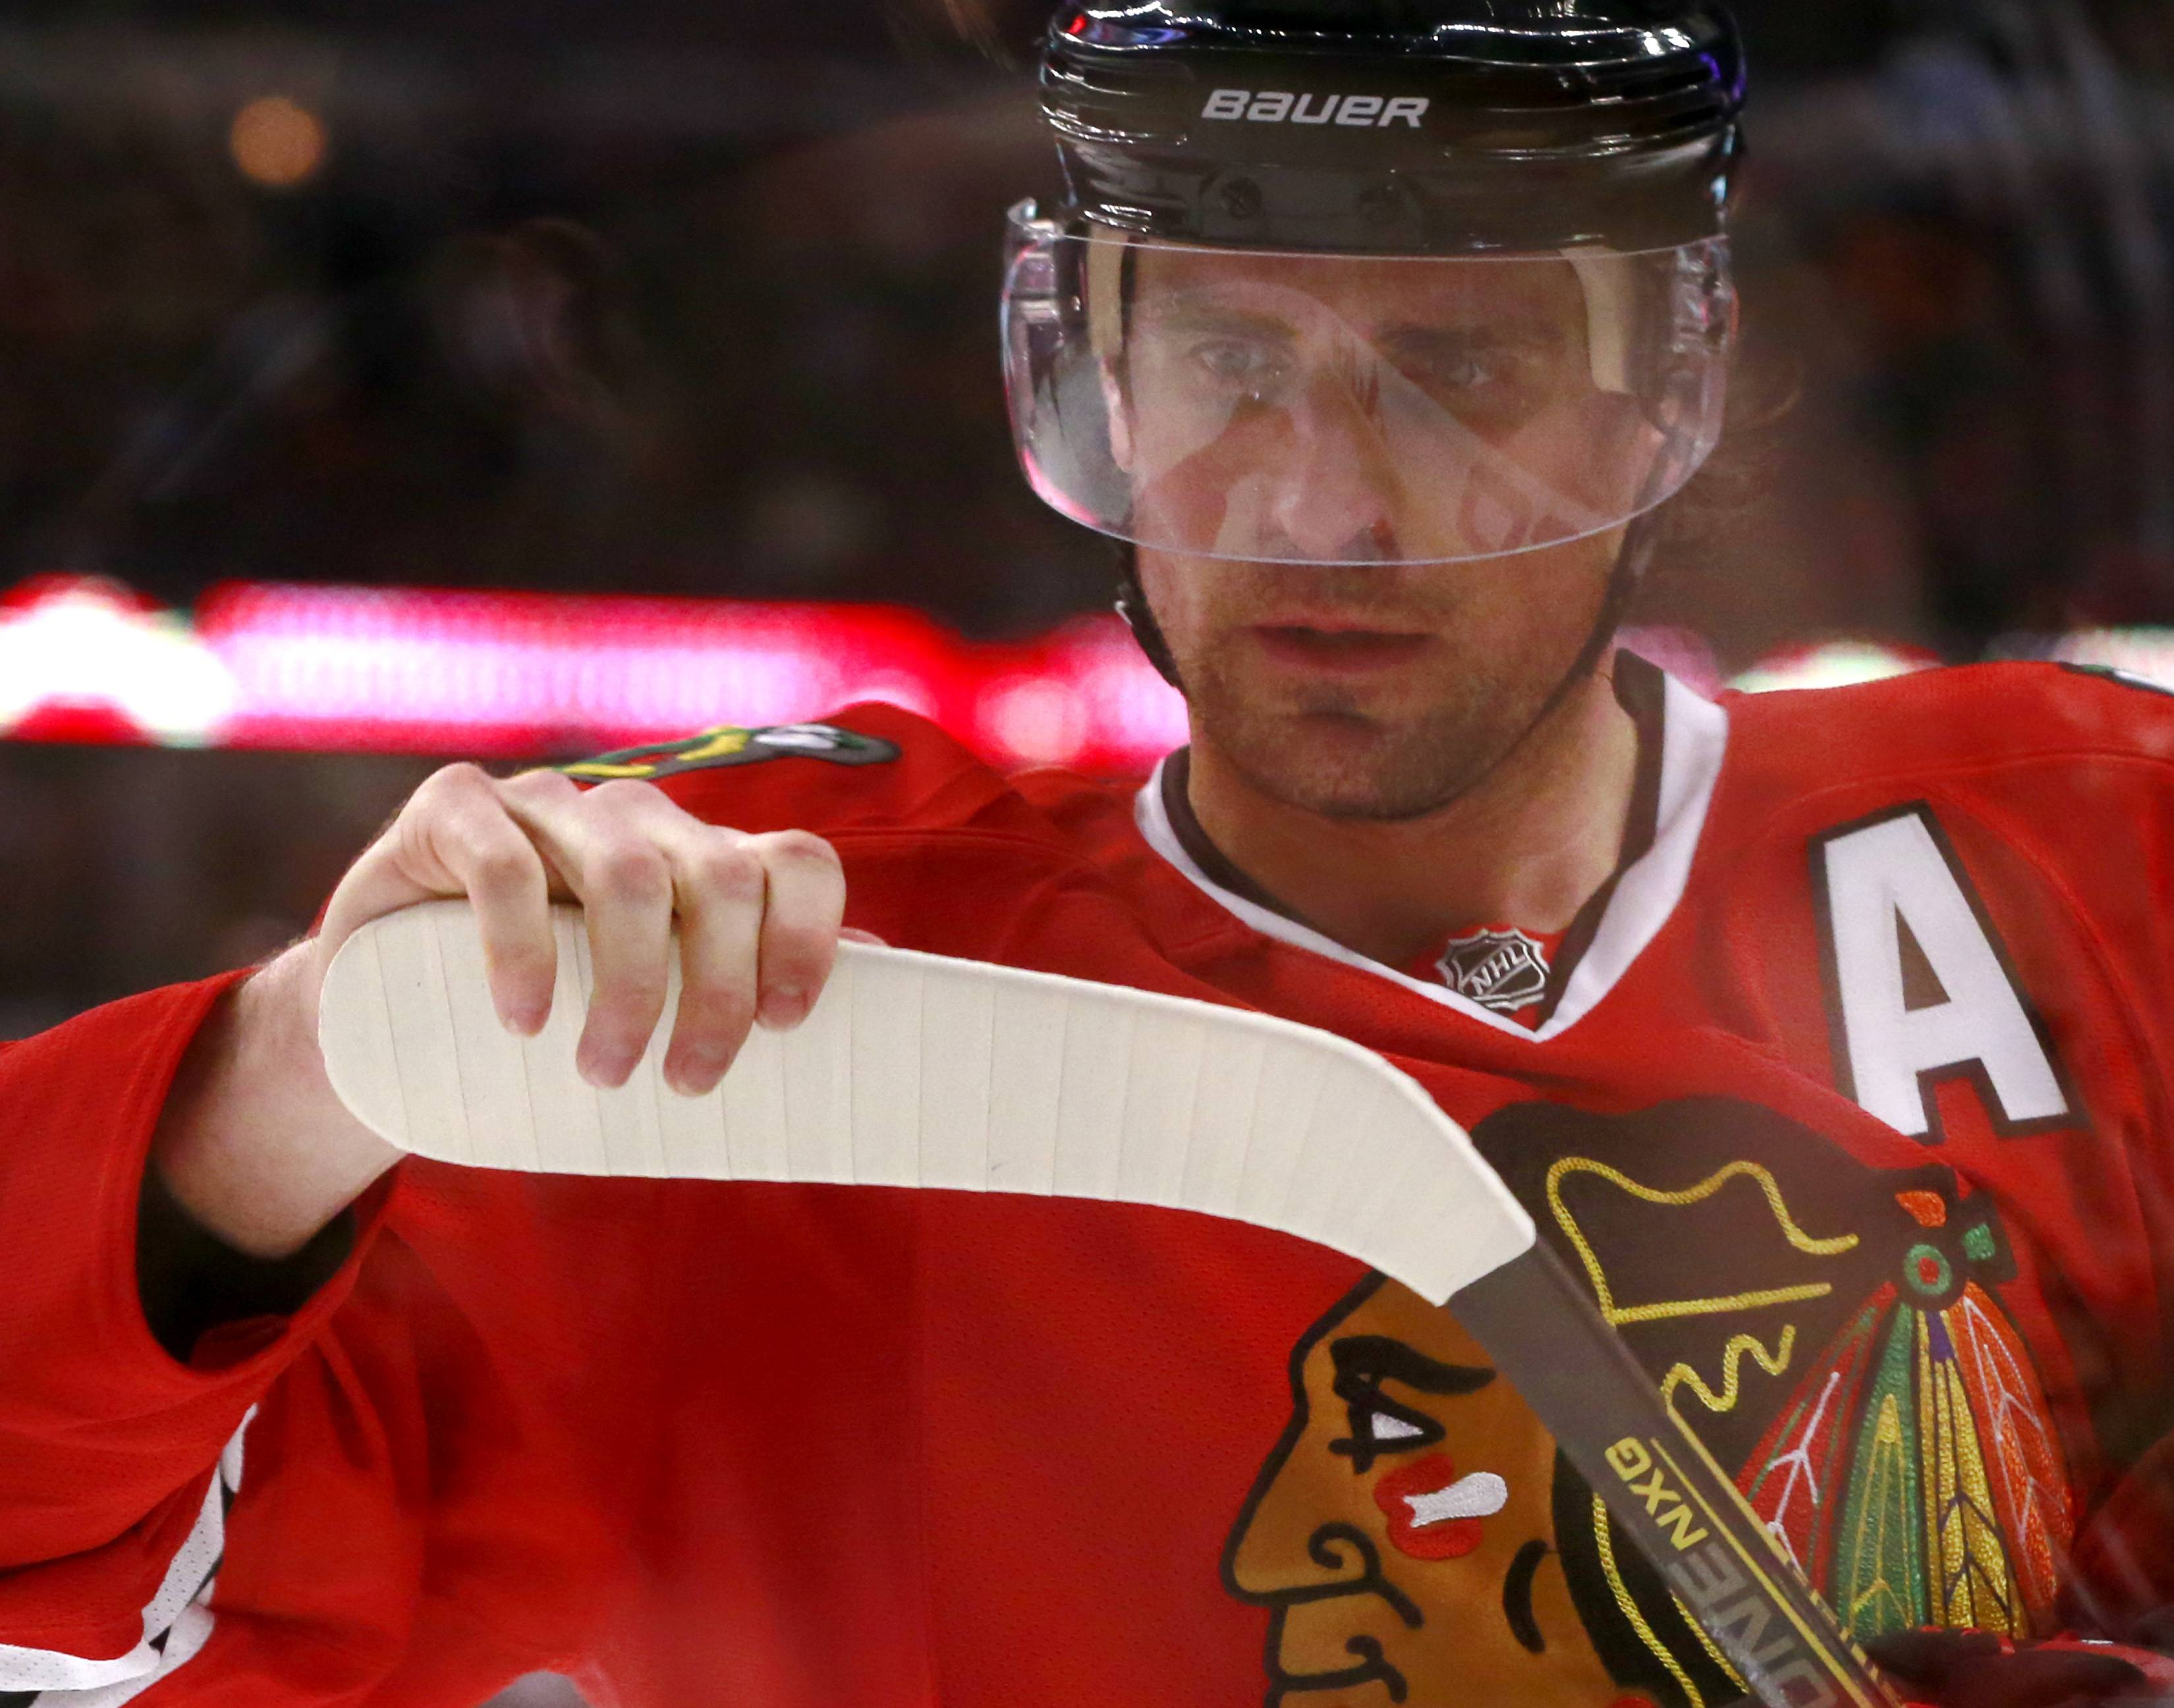 Blackhawks left wing Patrick Sharp says he's learned a lot from Blues coach Ken Hitchcock.